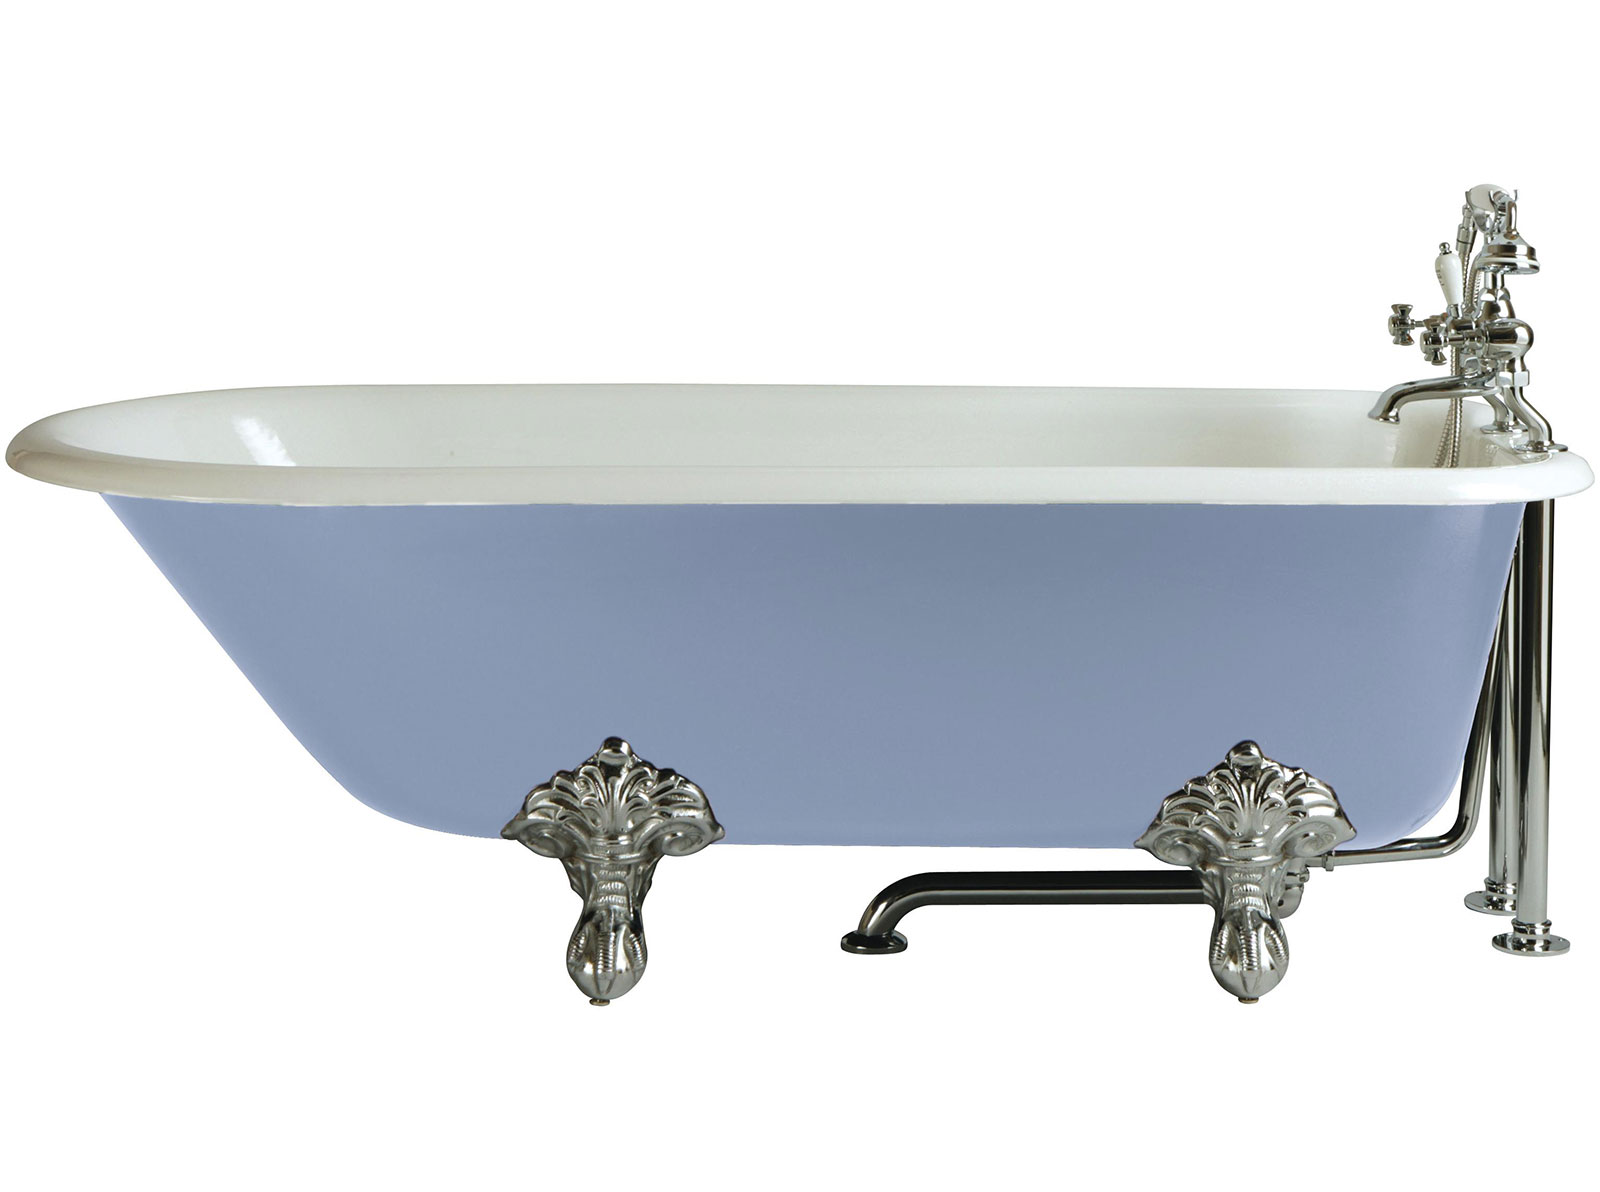 Bathroom Showrooms Essex essex freestanding cast iron roll top | cast iron baths | heritage®